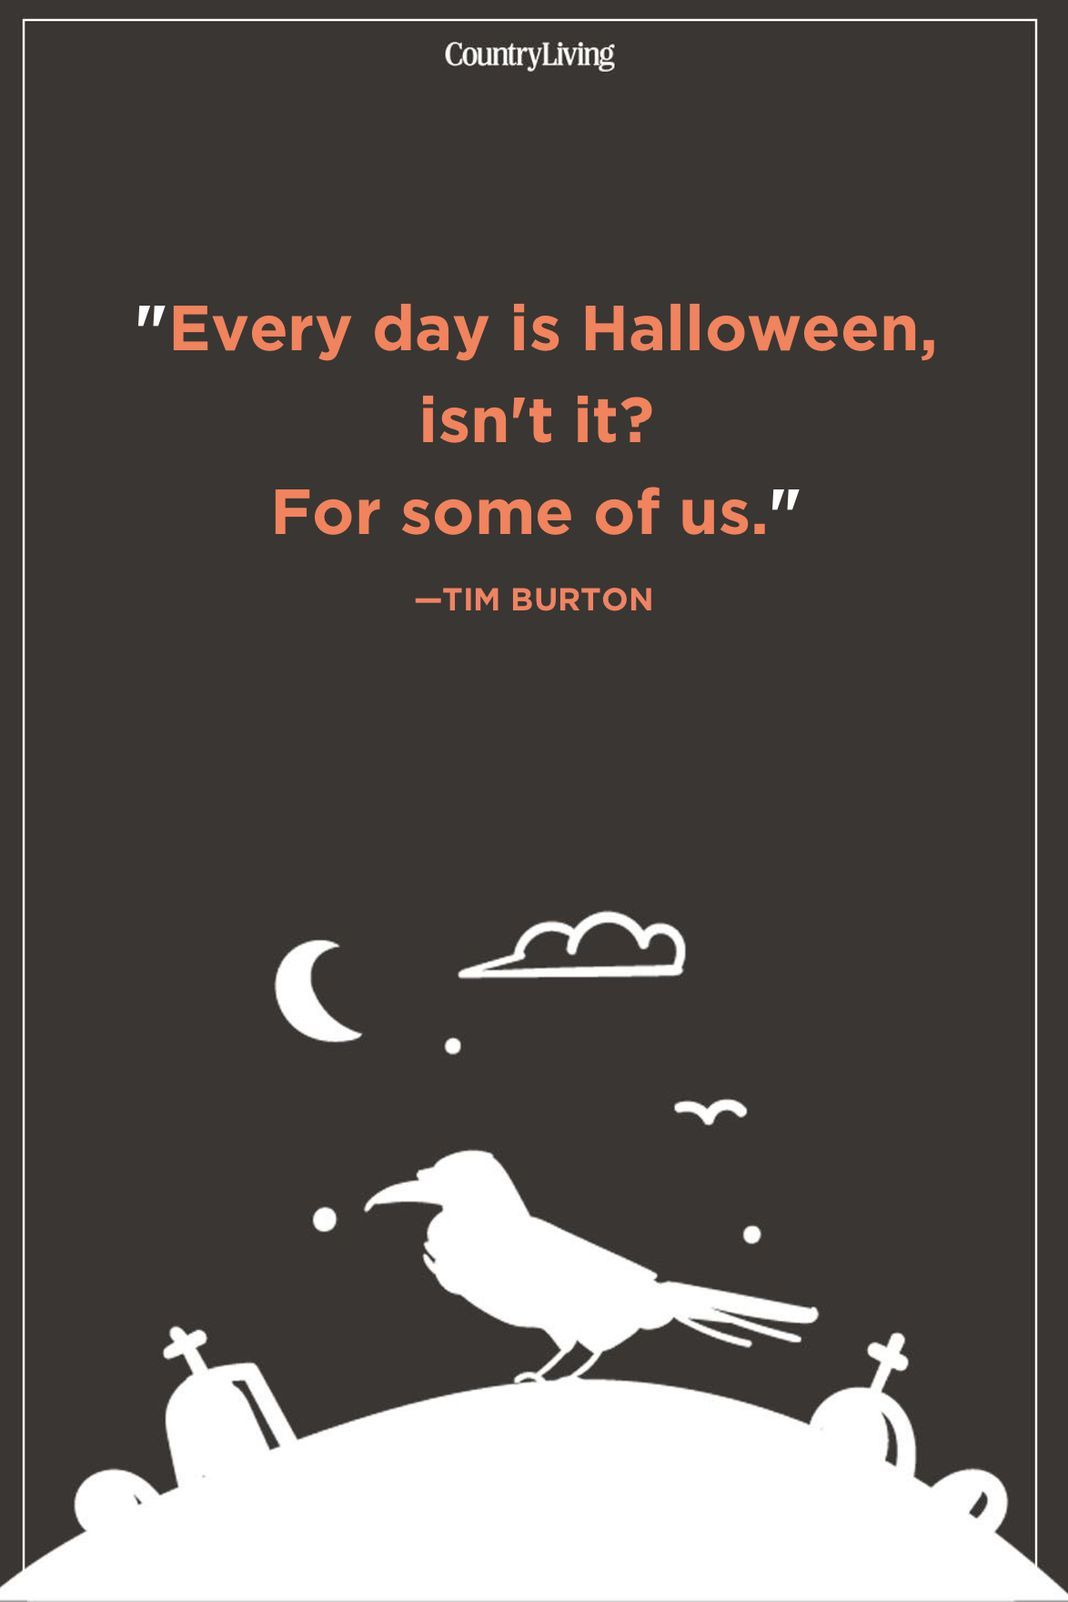 If These Halloween Quotes Don't Get You in the Spooky Spirit, Nothing Will